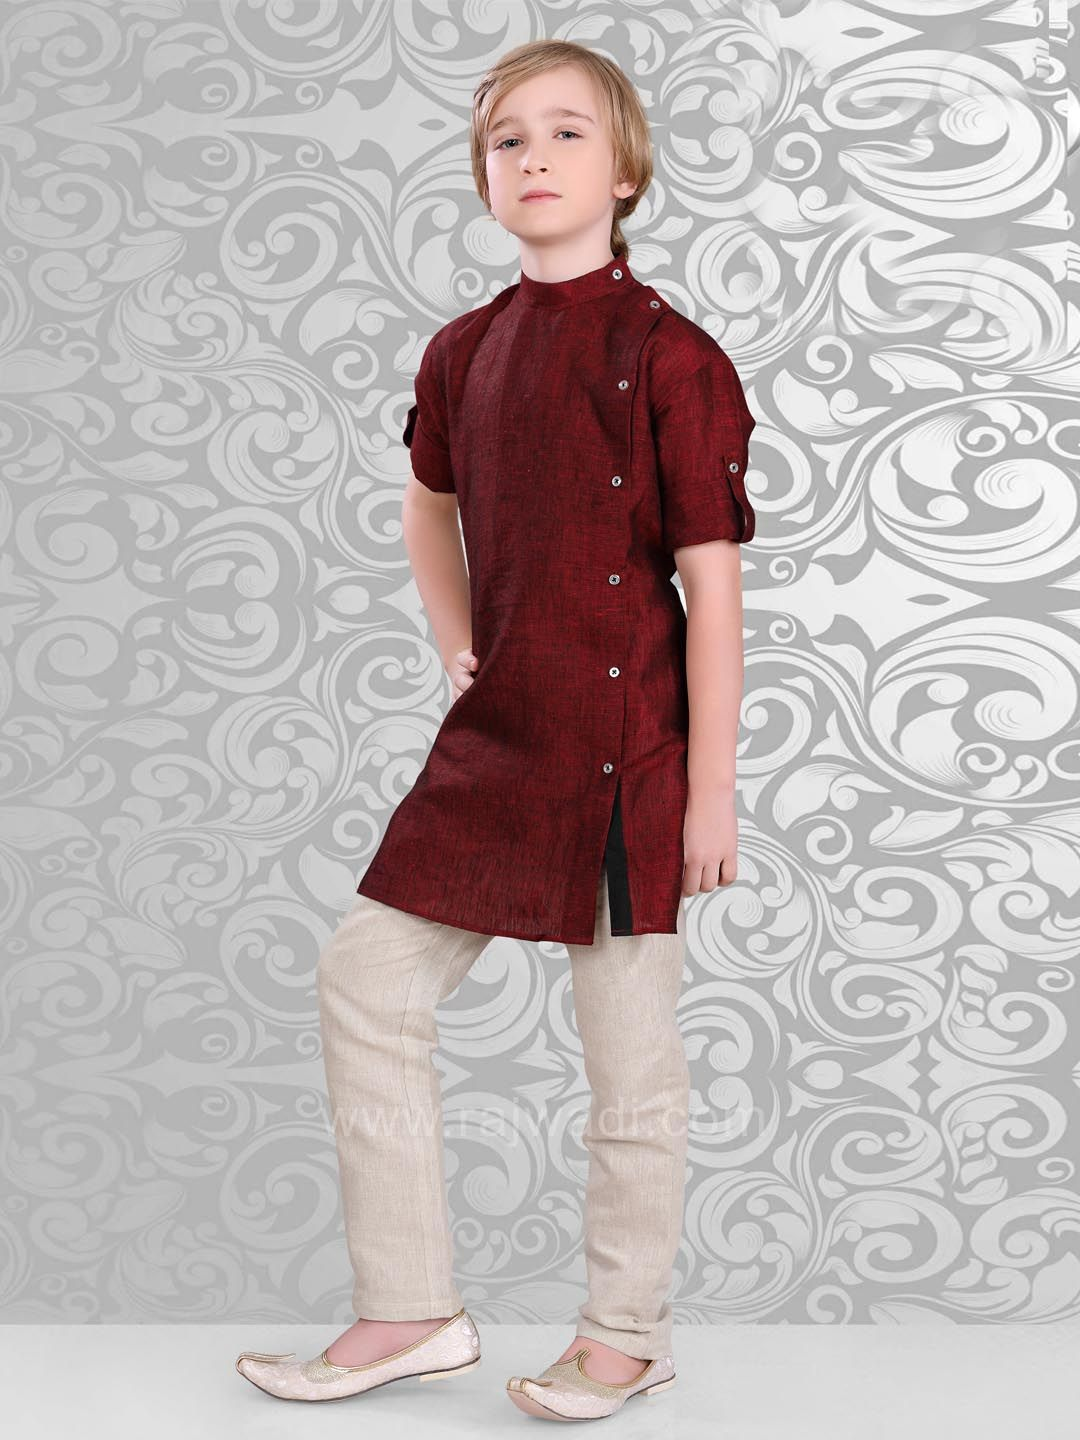 45656d400 Plain Dark Brown Color Kurta With Side Button #rajwadi #kidswear #boys  #ethnic #traditional #modern #trendy #fashionable #kidsfashion